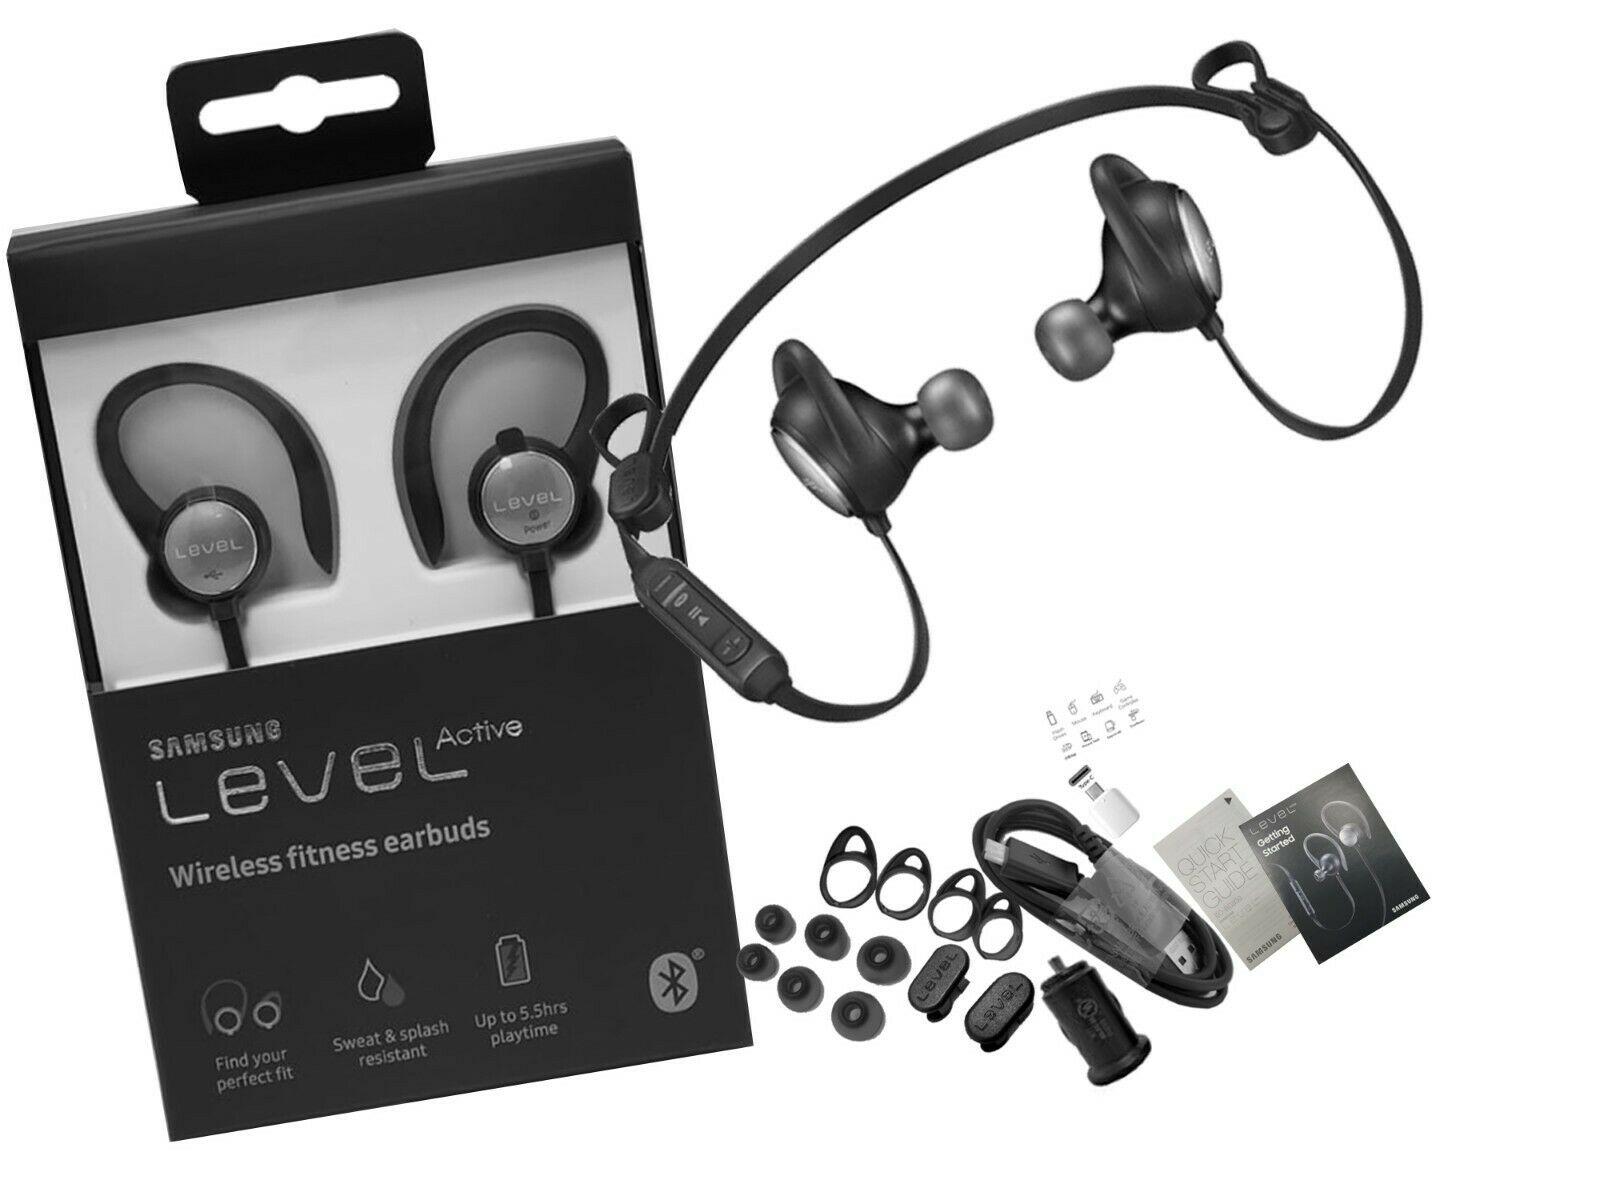 Samsung Level Active Wireless Bluetooth Fitness Earbuds  - E